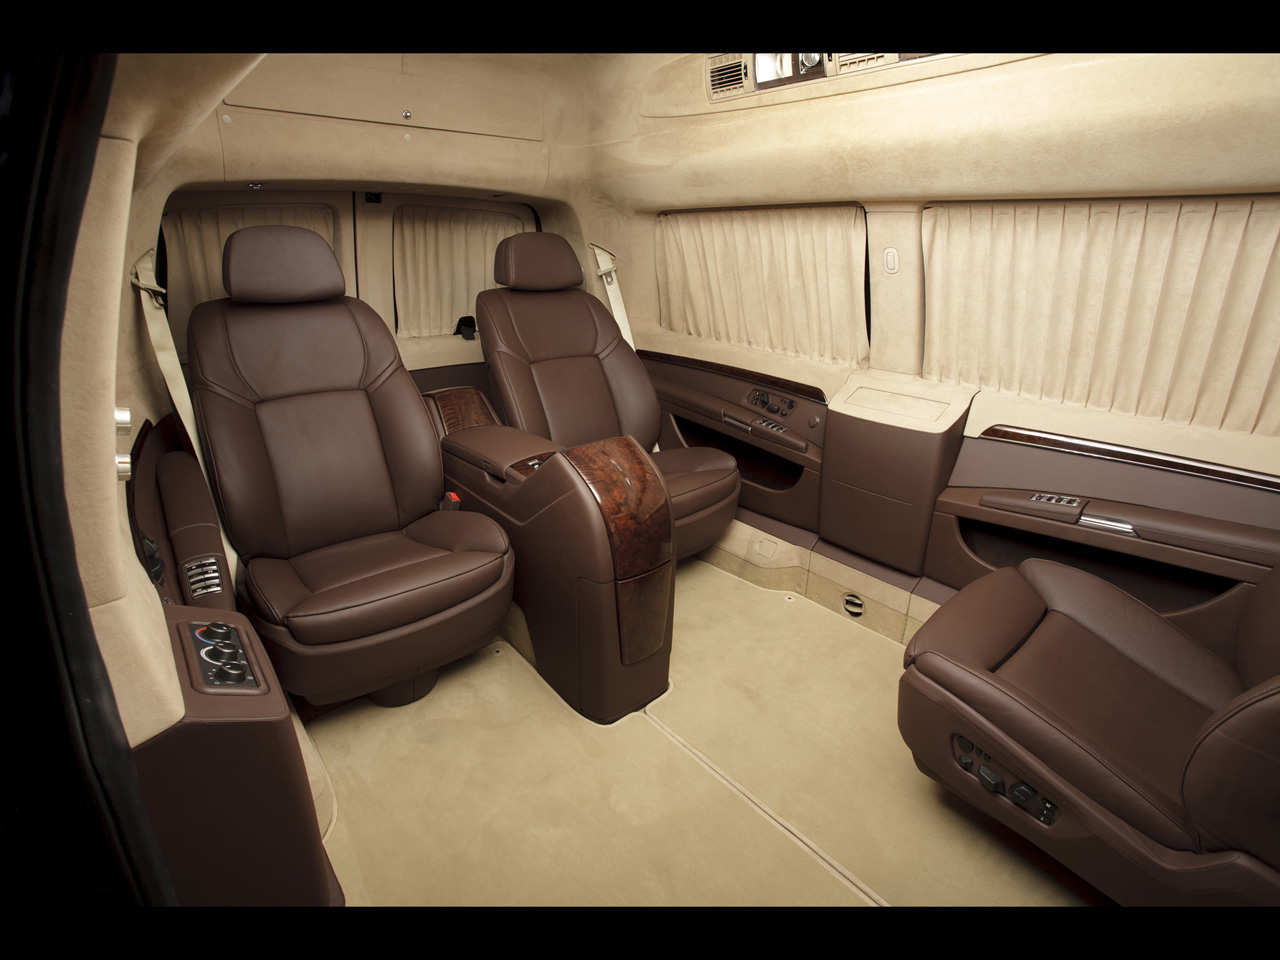 CHEVROLET EXPRESS interior